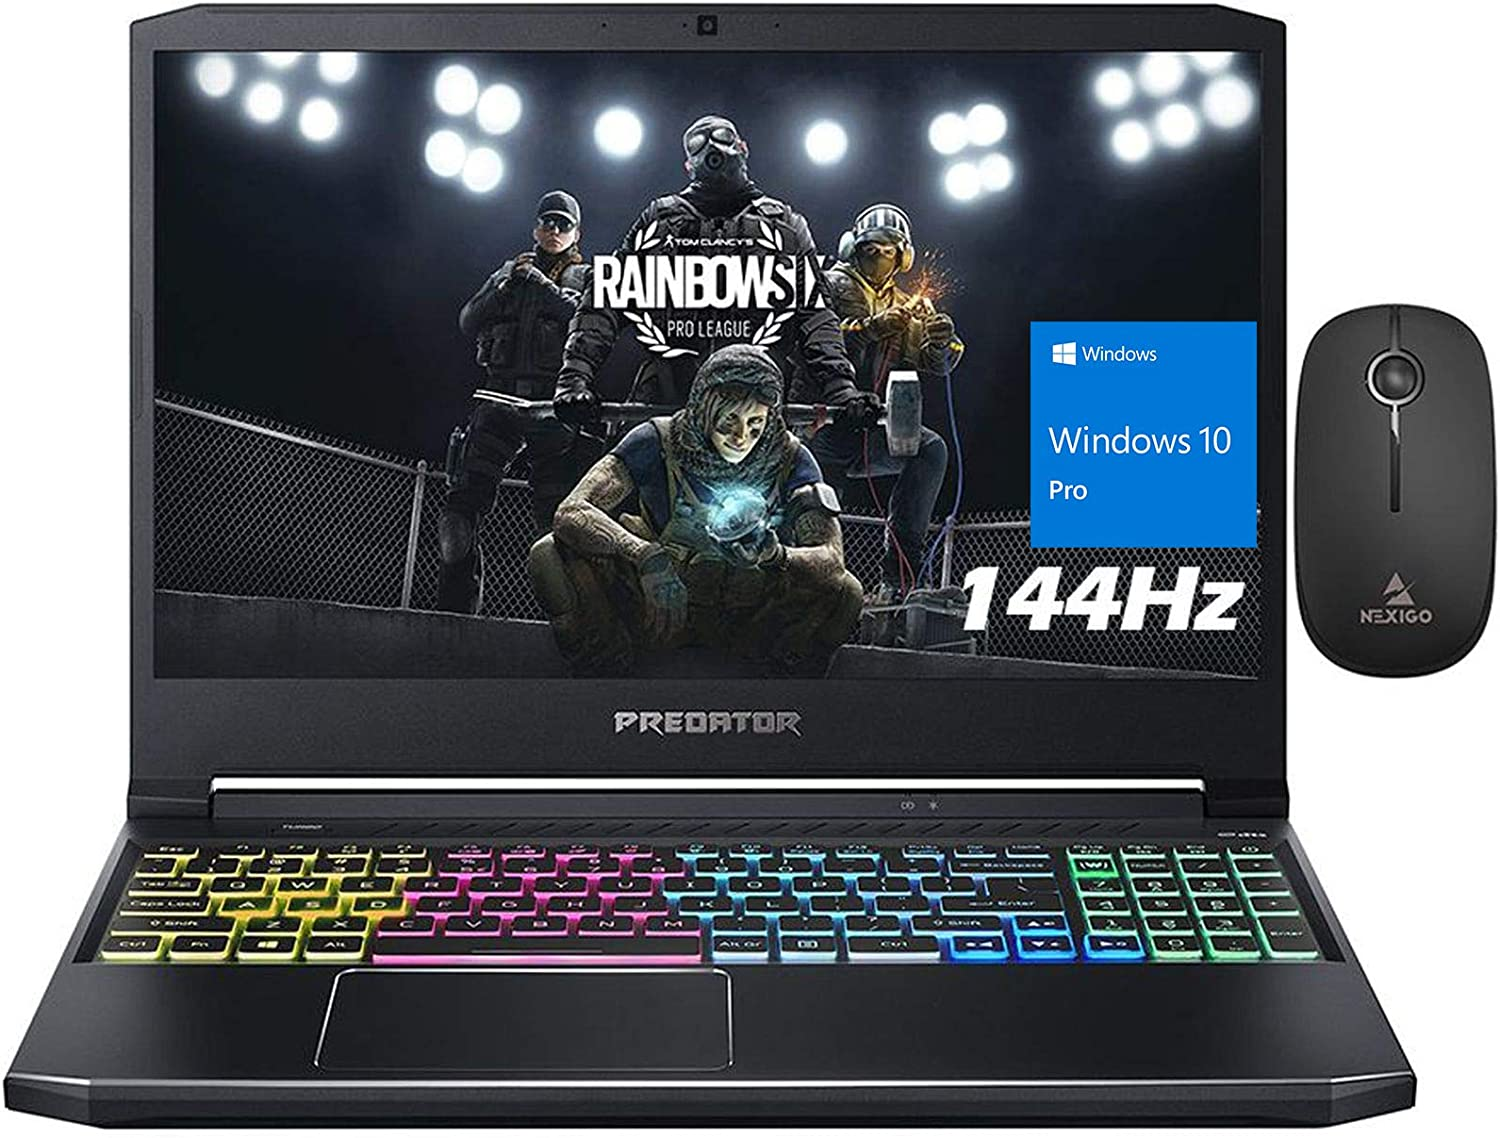 2020 Acer Predator 15 144Hz FHD 1080P Gaming Laptop, Intel Core i7-10750H up to 5.00 GHz, RTX 2060 6GB, 16GB RAM, 512GB SSD (Boot) + 1TB HDD, Backlit KB, Win10 Pro + NexiGo Wireless Mouse Bundle